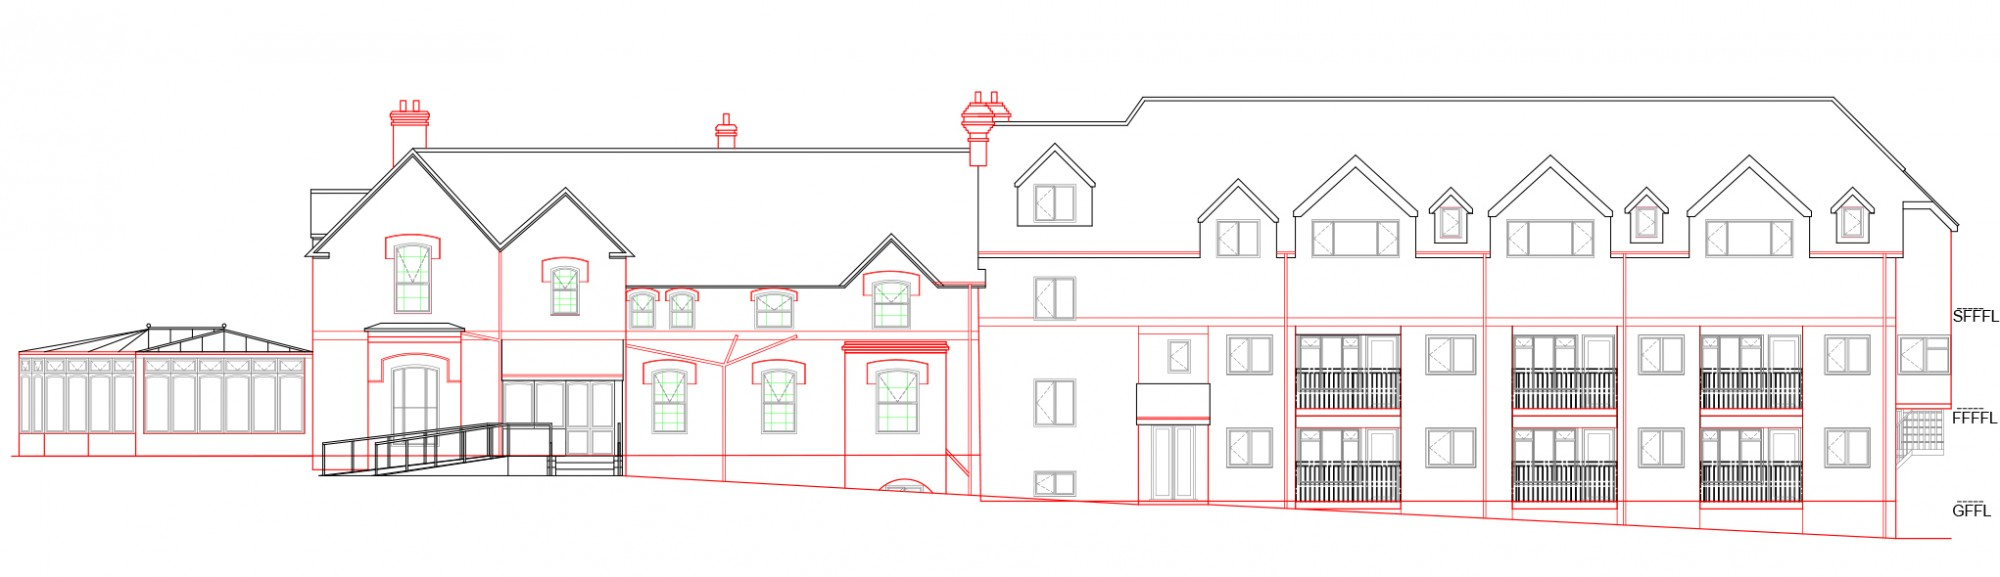 Elevation of care home, Suffolk